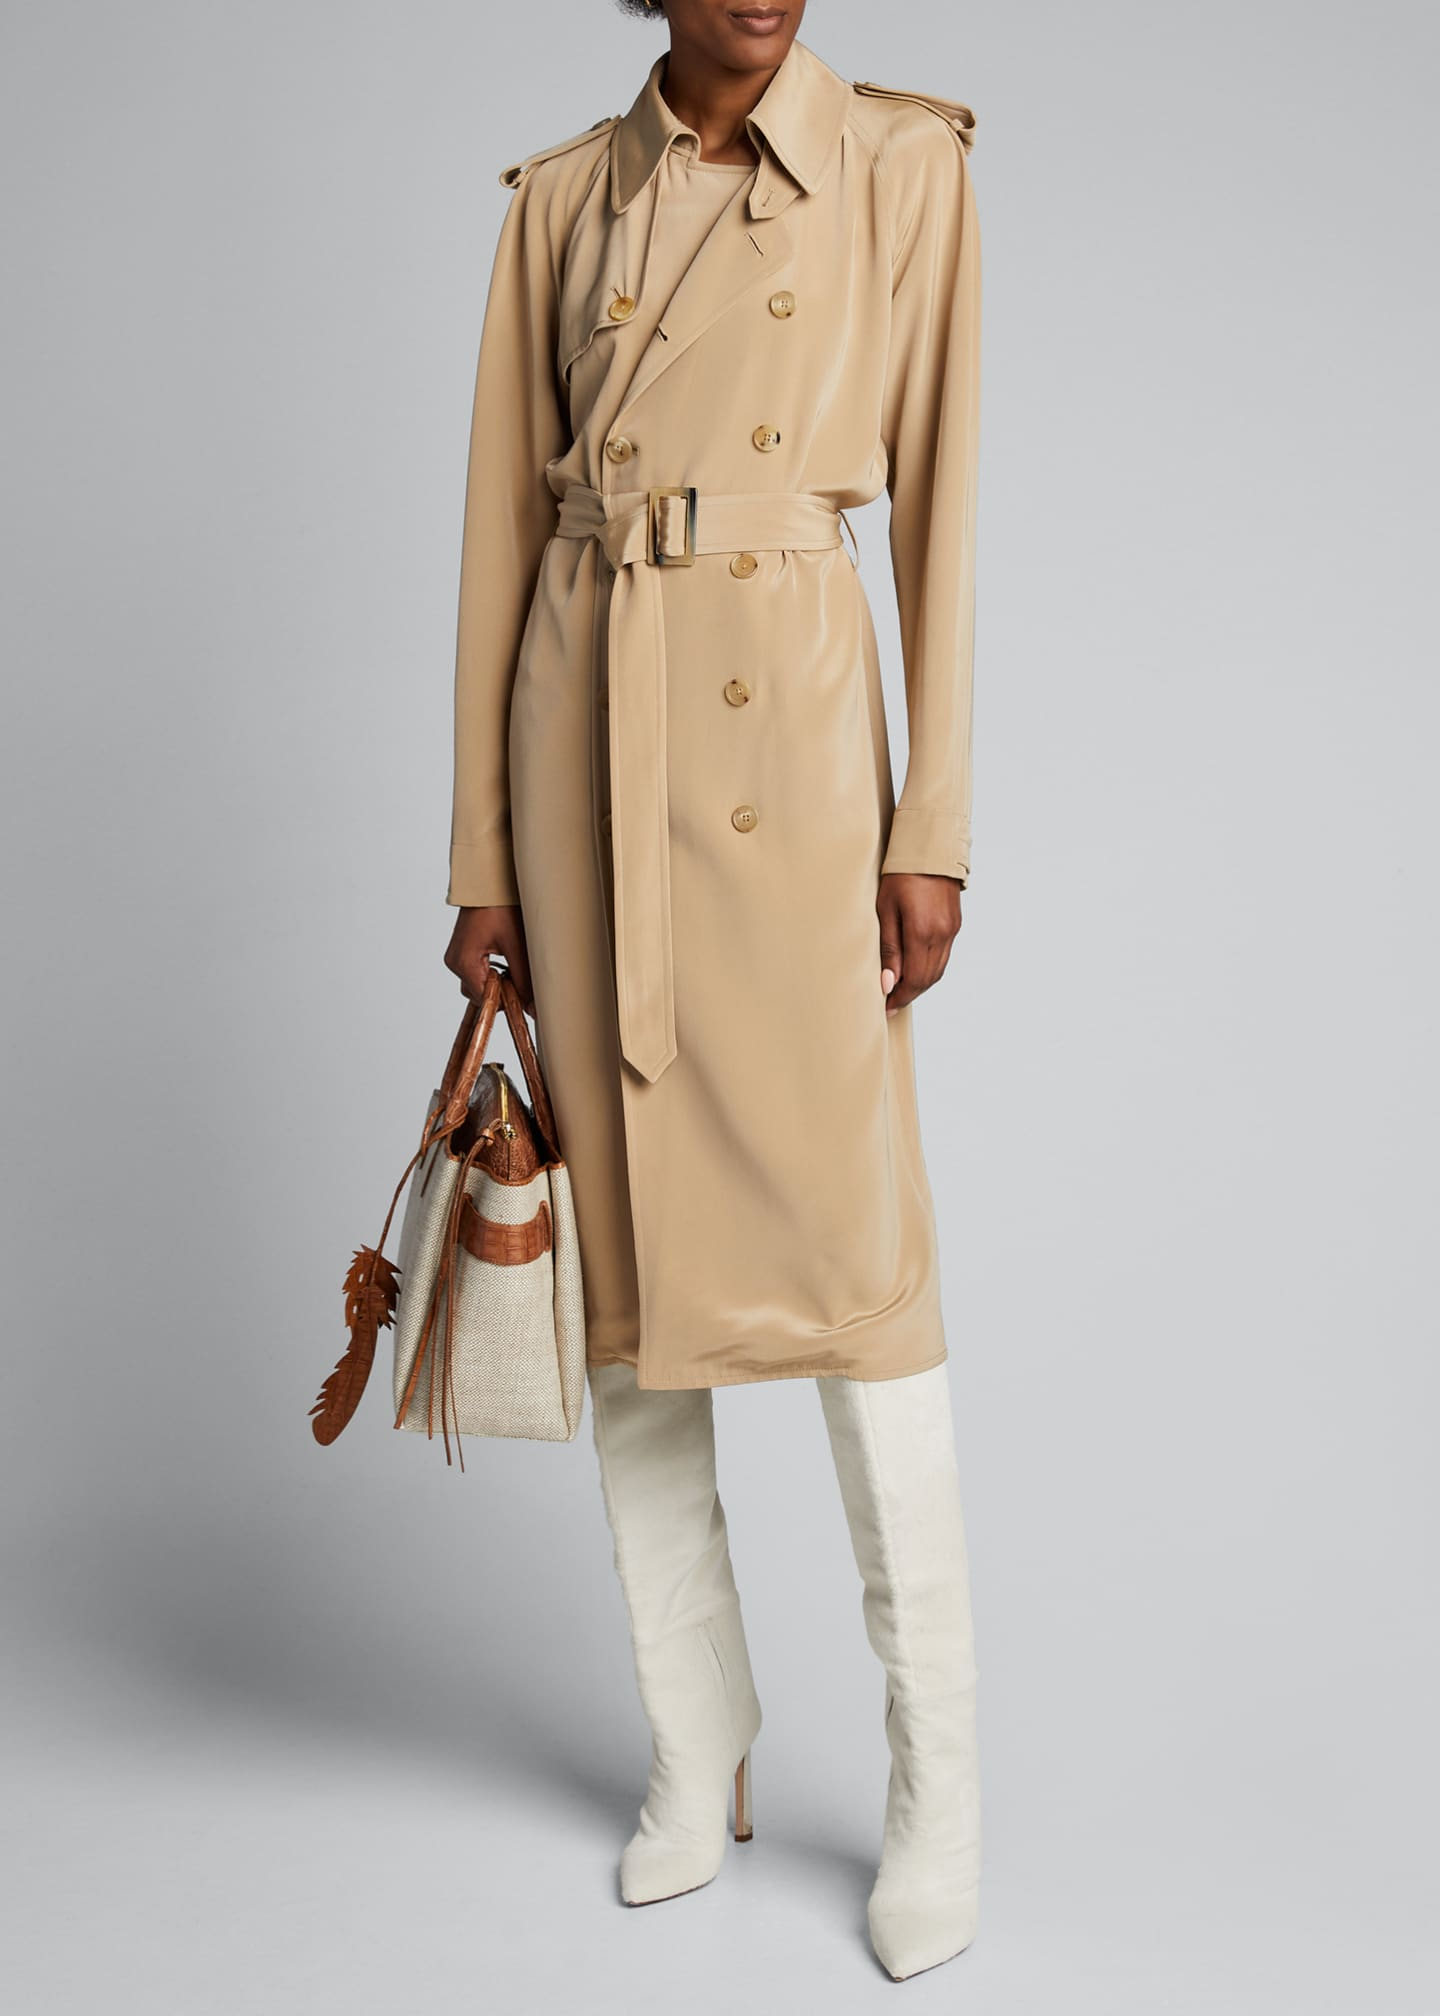 Ralph Lauren Collection Charley Trench Dress